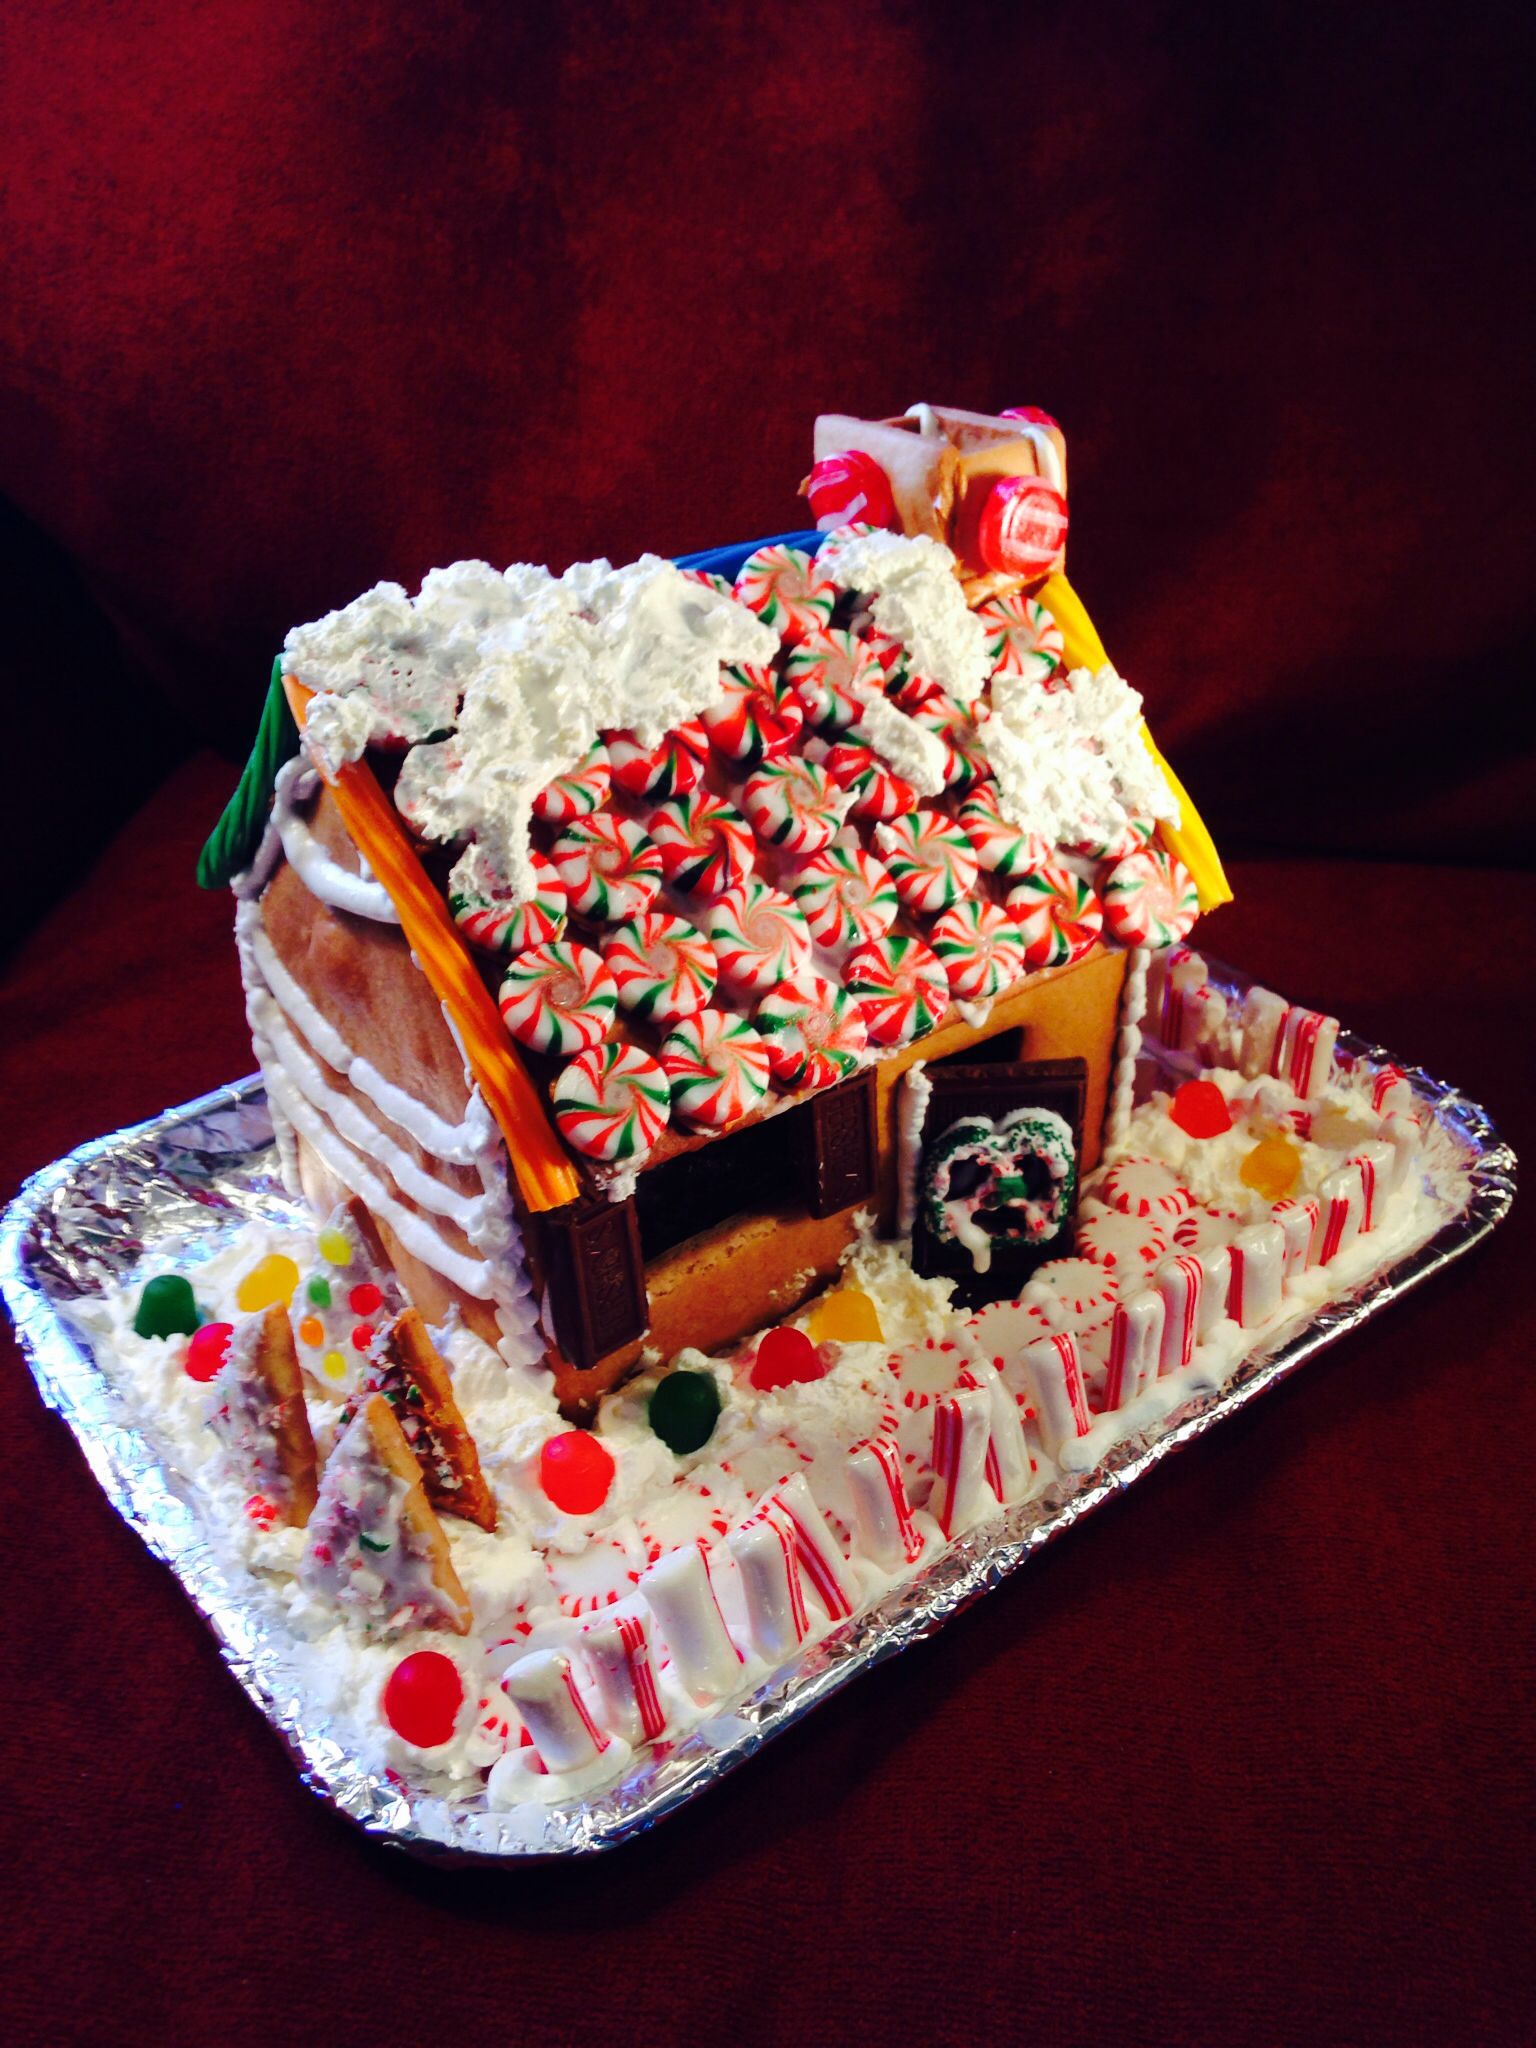 Gingerbread house with a light snow fall on the red white